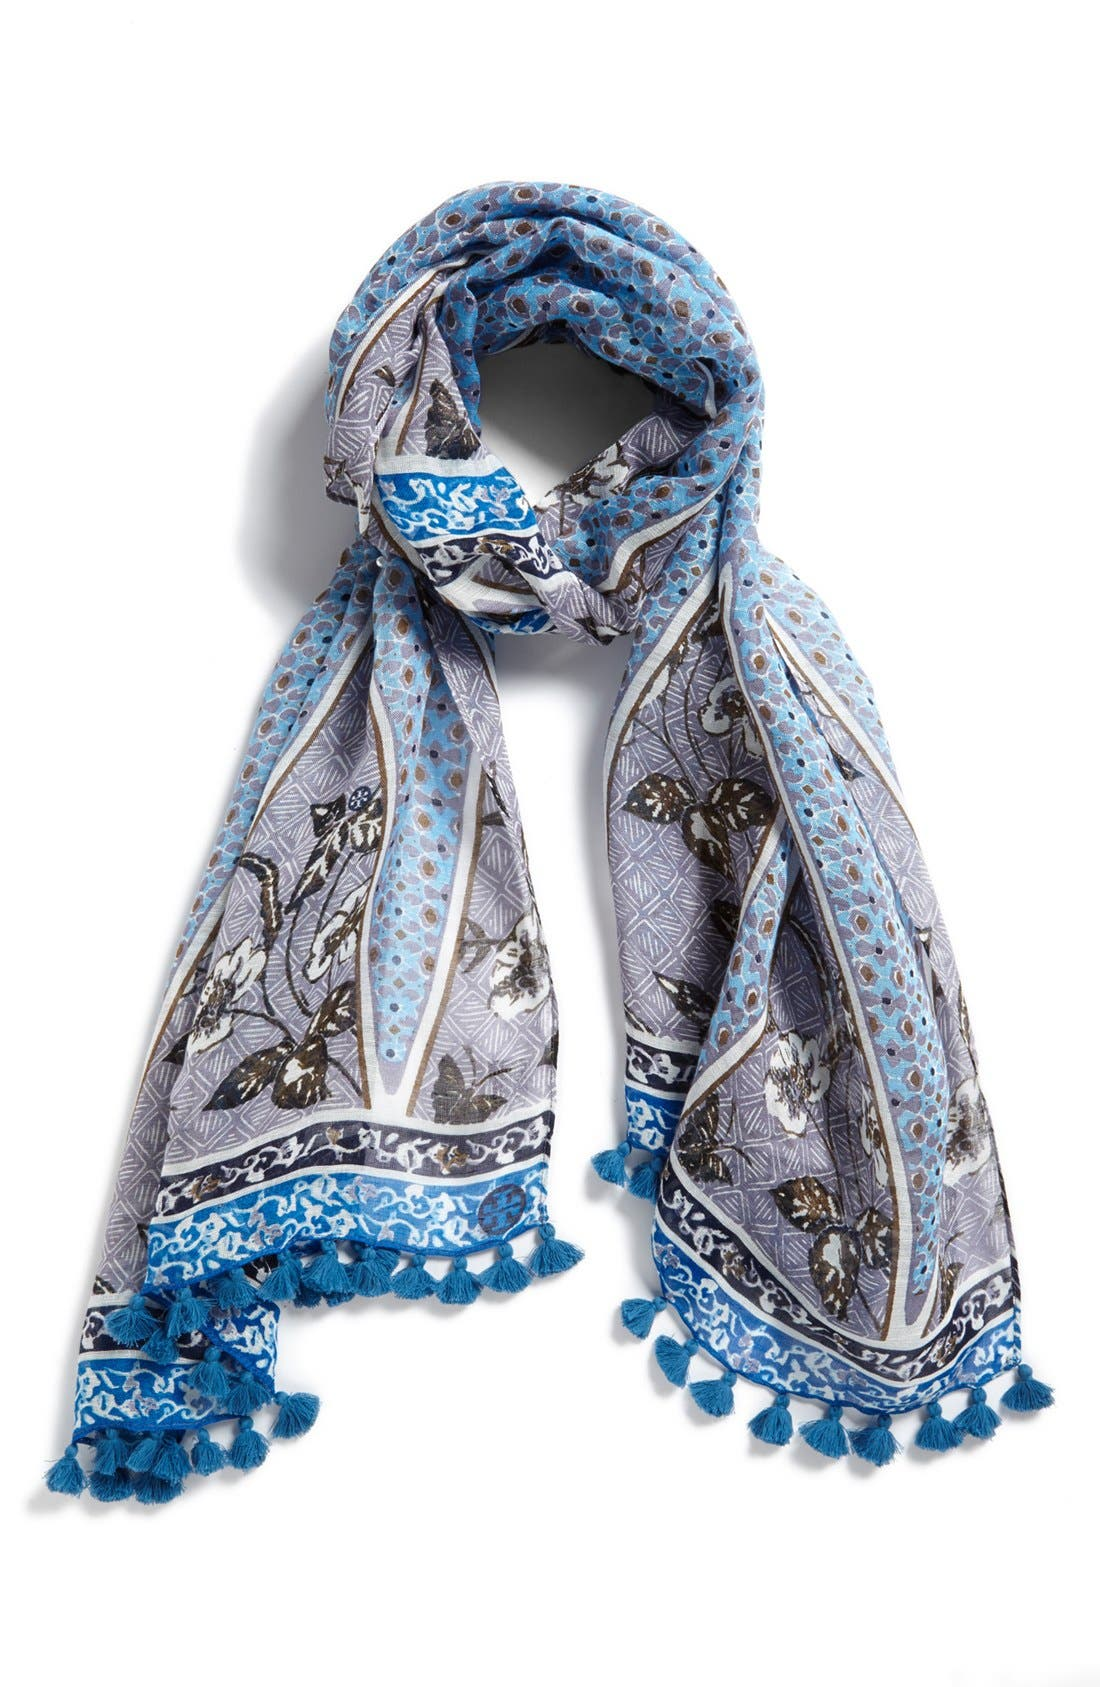 Alternate Image 1 Selected - Tory Burch 'Olea' Floral Mix Pompom Scarf